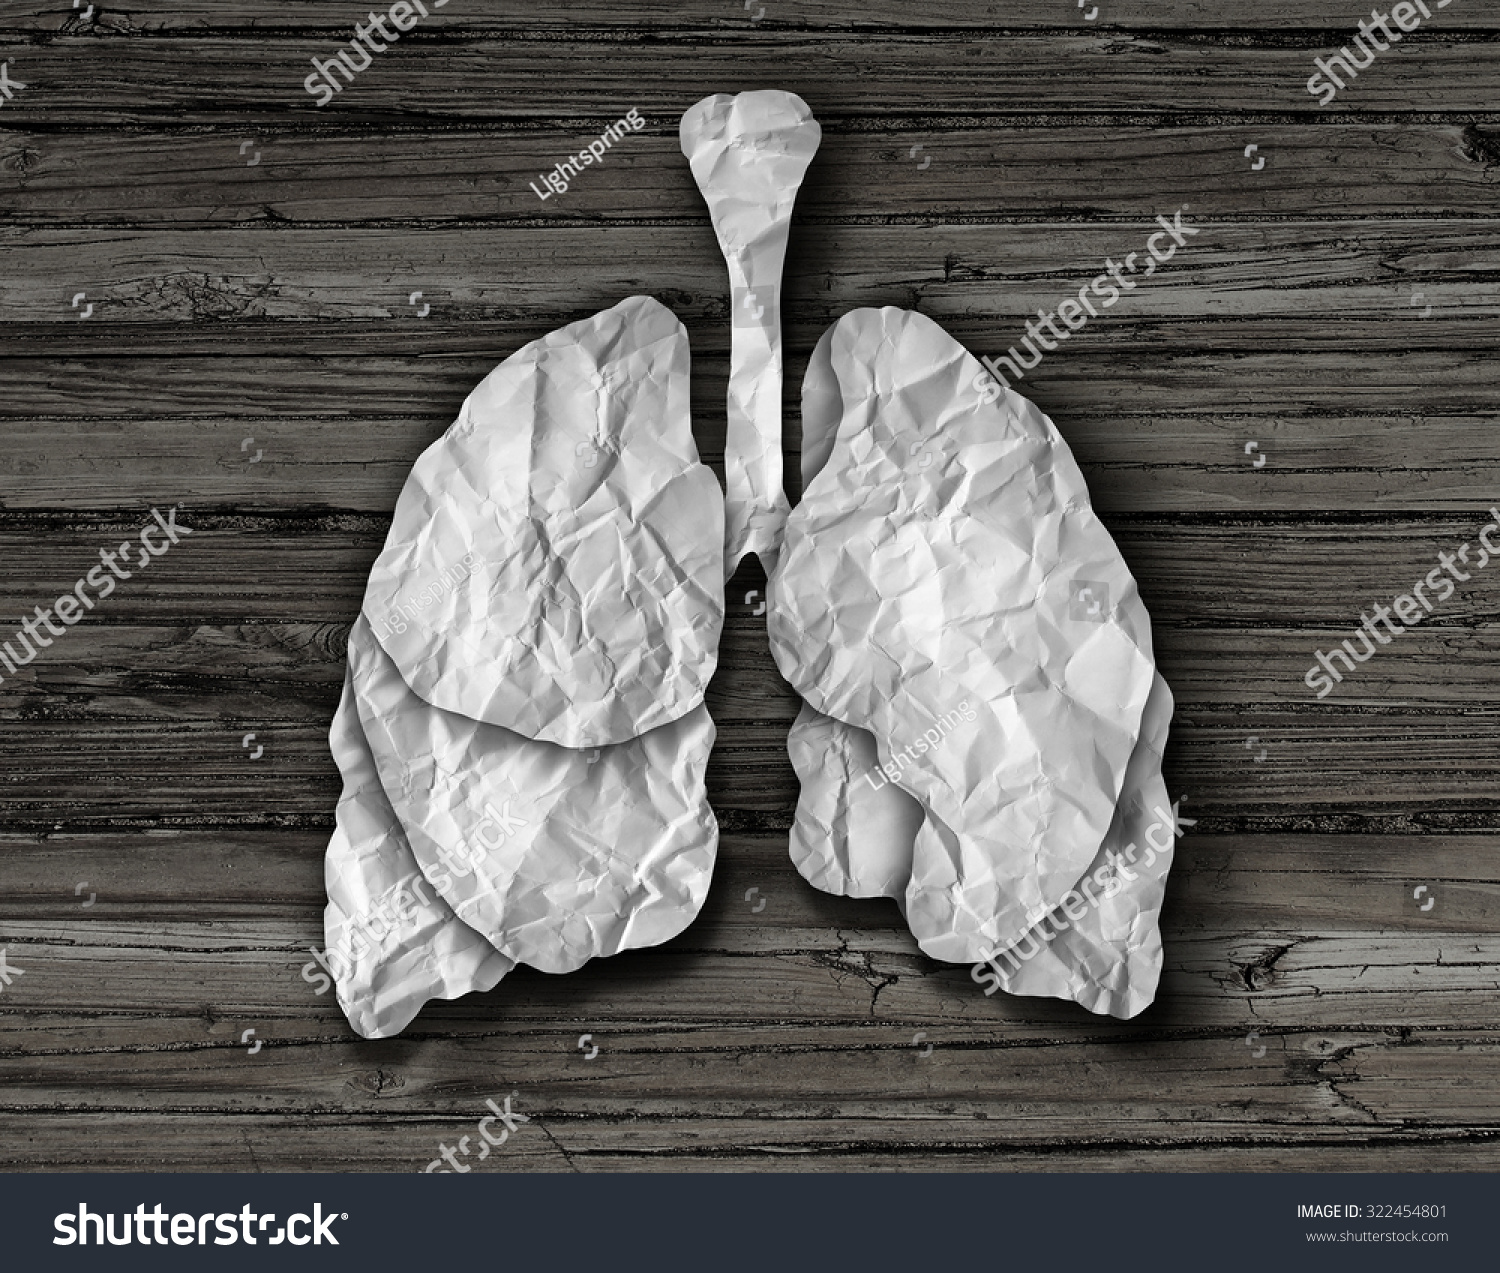 Human lung concept or healthy lungs organ made of cut crumpled white paper on an old wood background representing the medical anatomy of the respiratory system to provide oxygen to the body